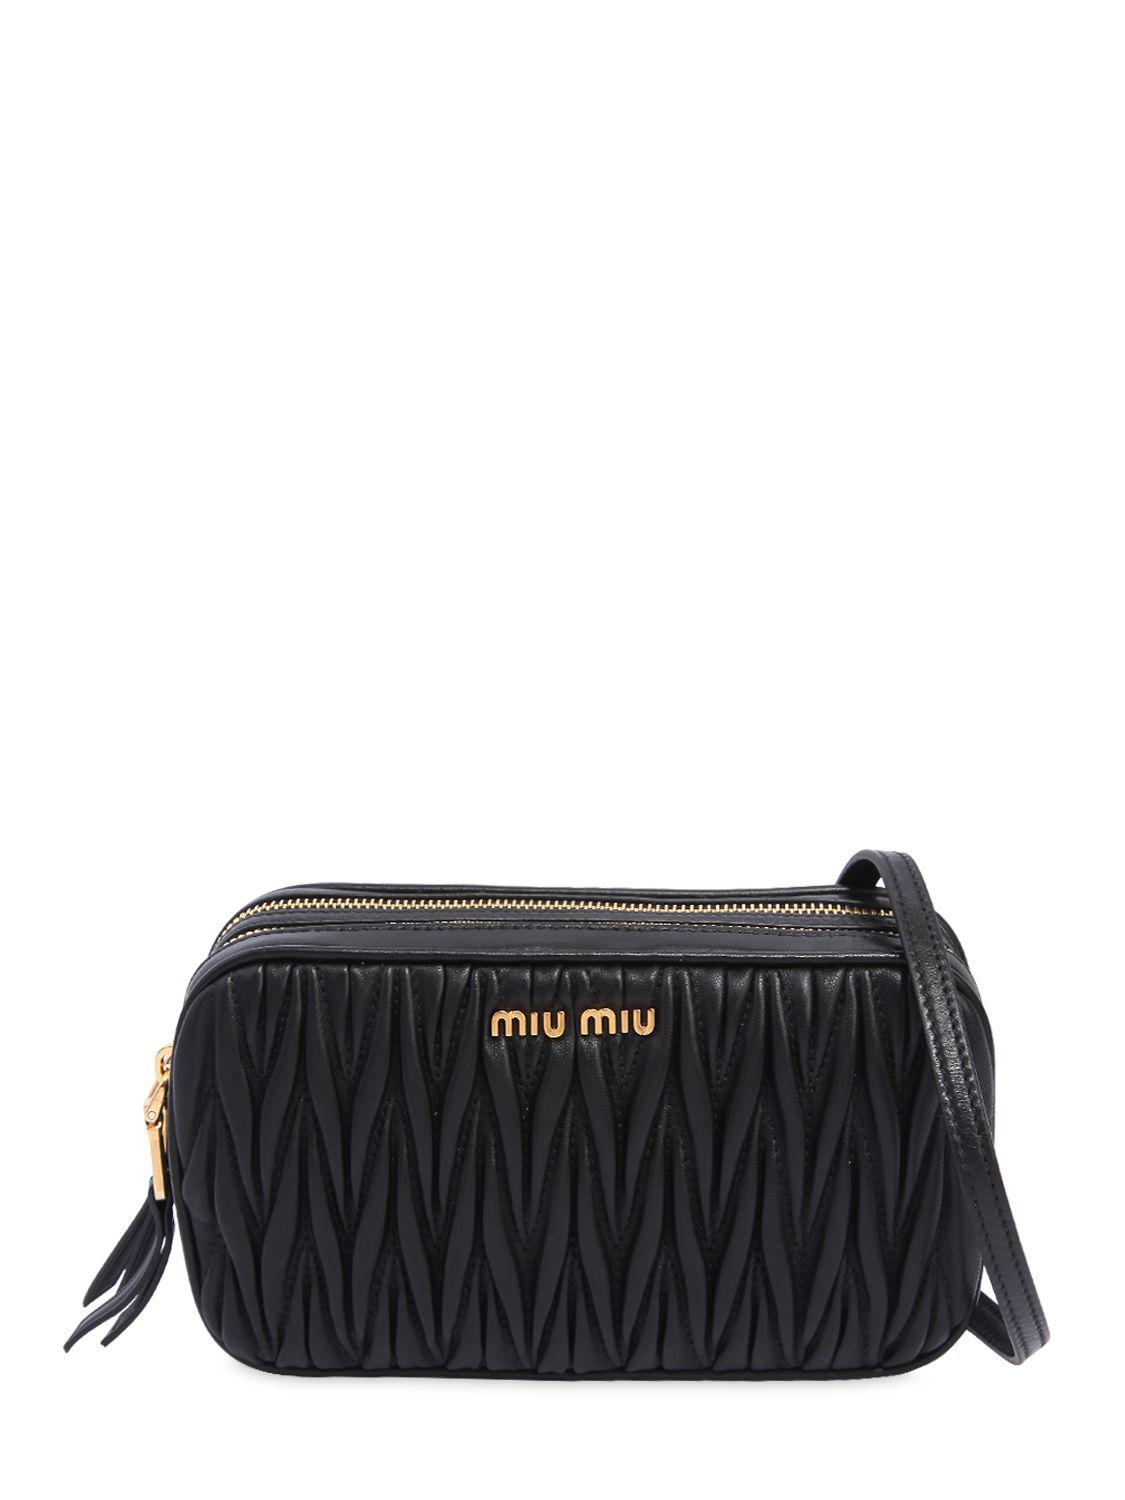 Lyst - Miu Miu Double Zip Quilted Leather Camera Bag in Black - Save 3% 26cac66cfadfd